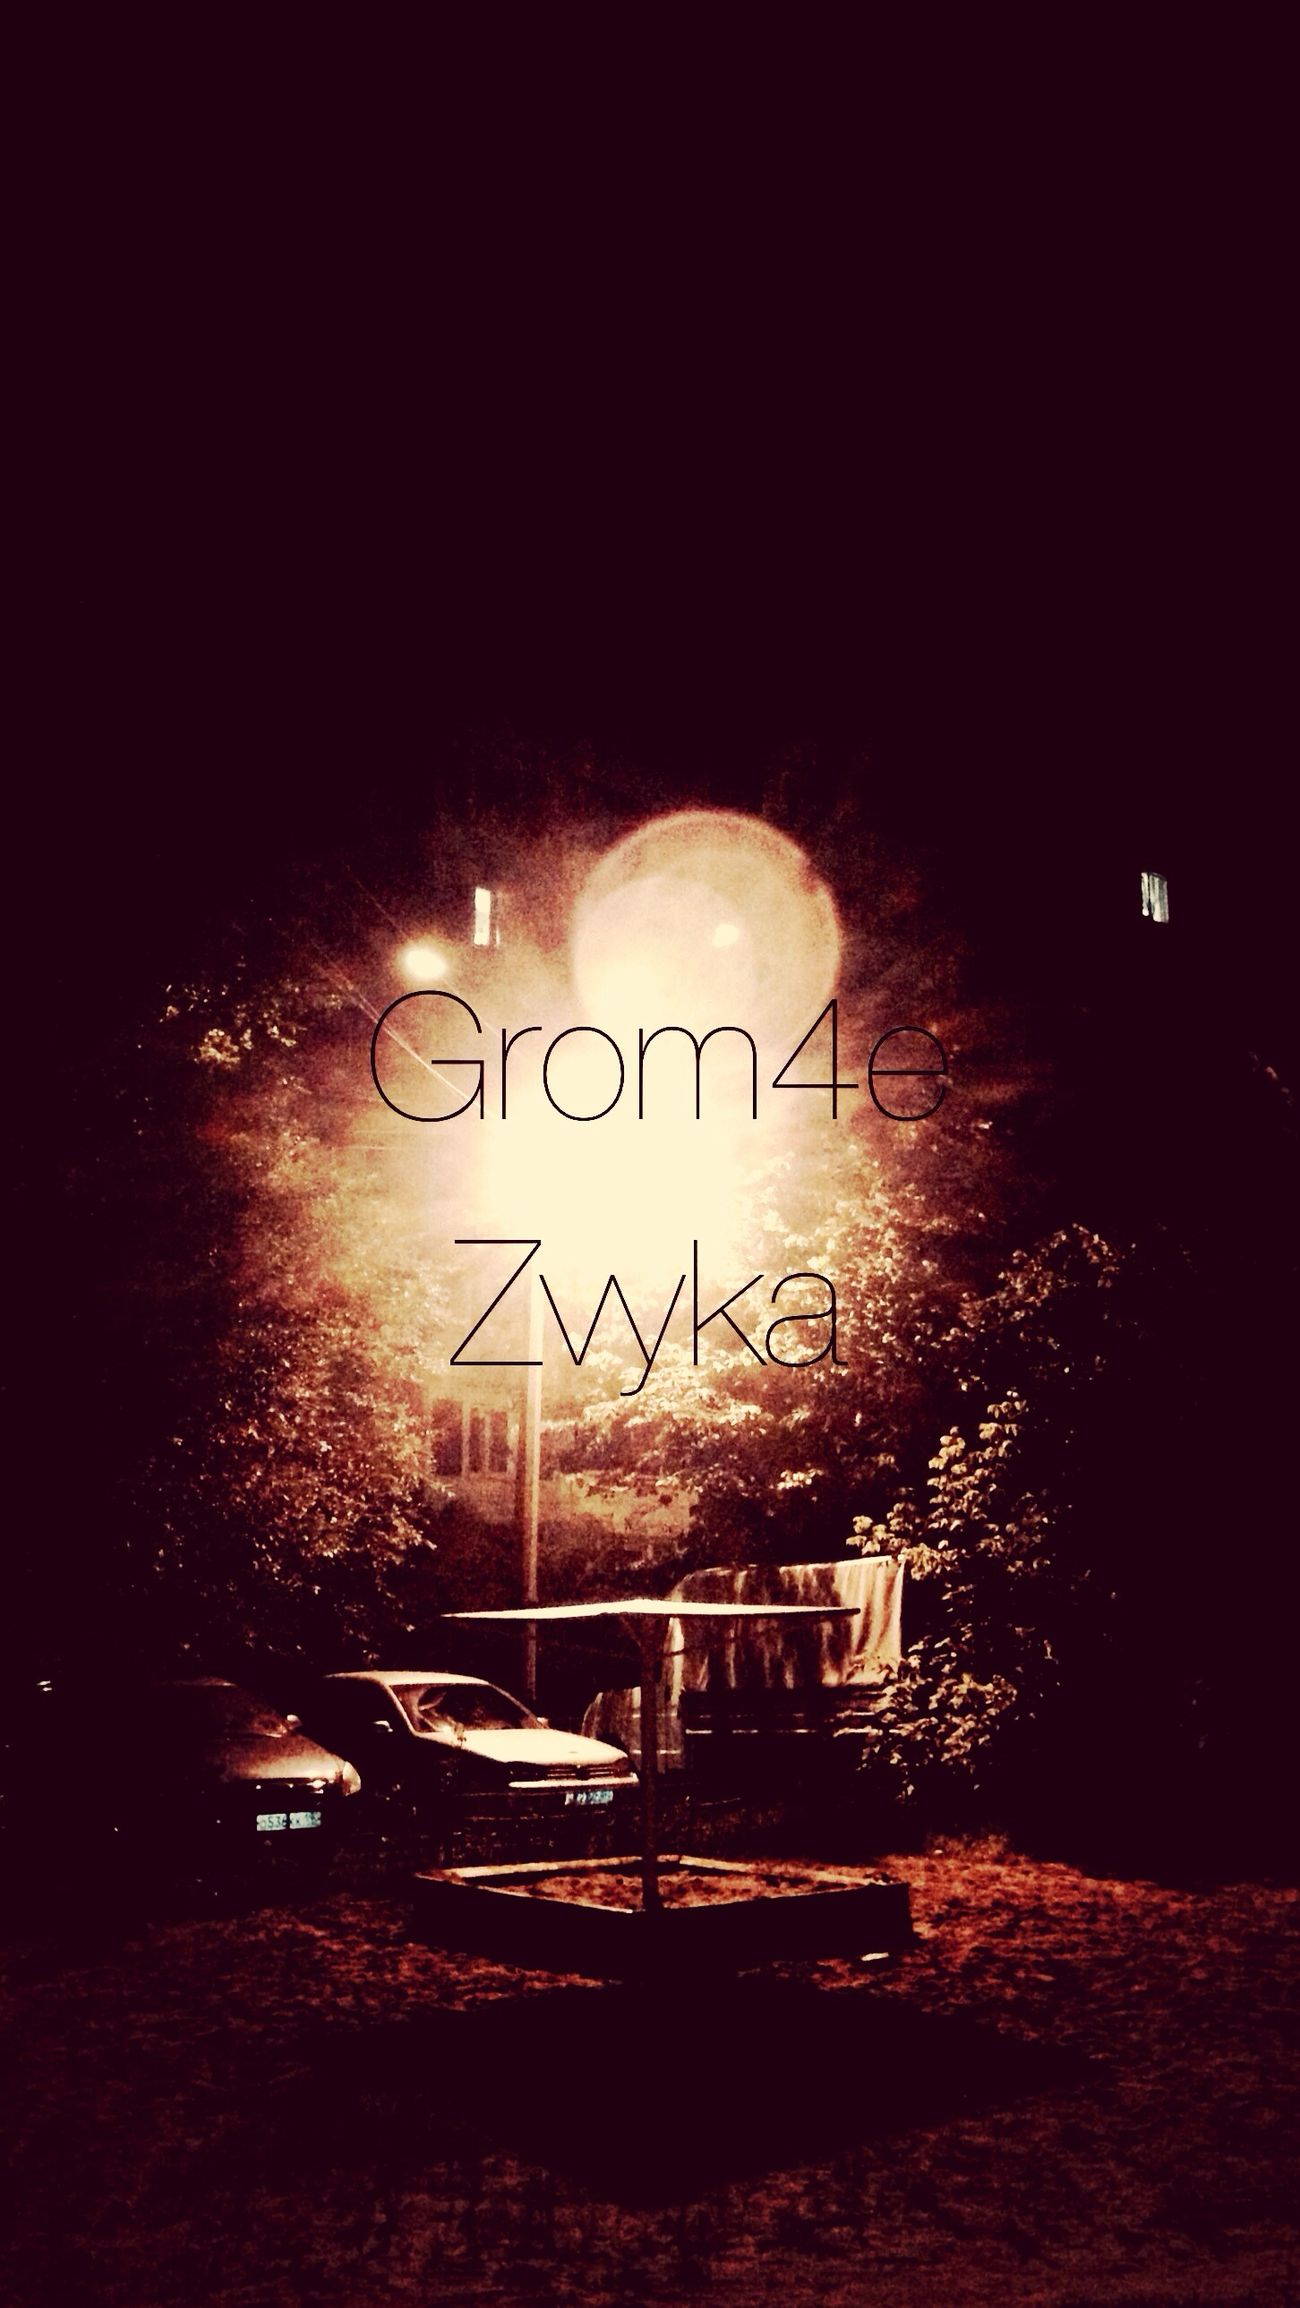 Grom4eZvyka&Armand original??